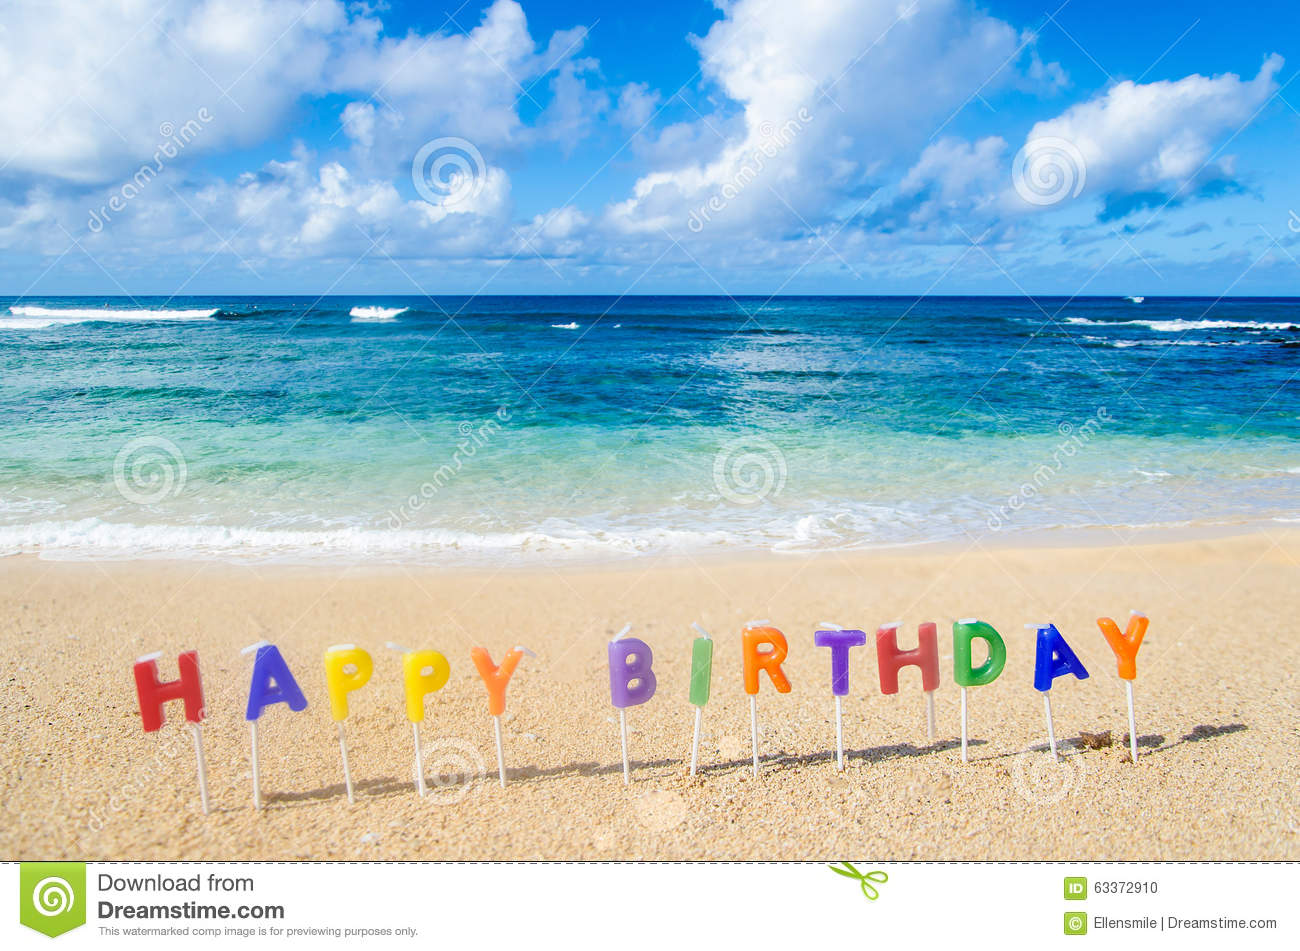 Fond De Joyeux Anniversaire Photo Stock Image Du Hawaien Tropical